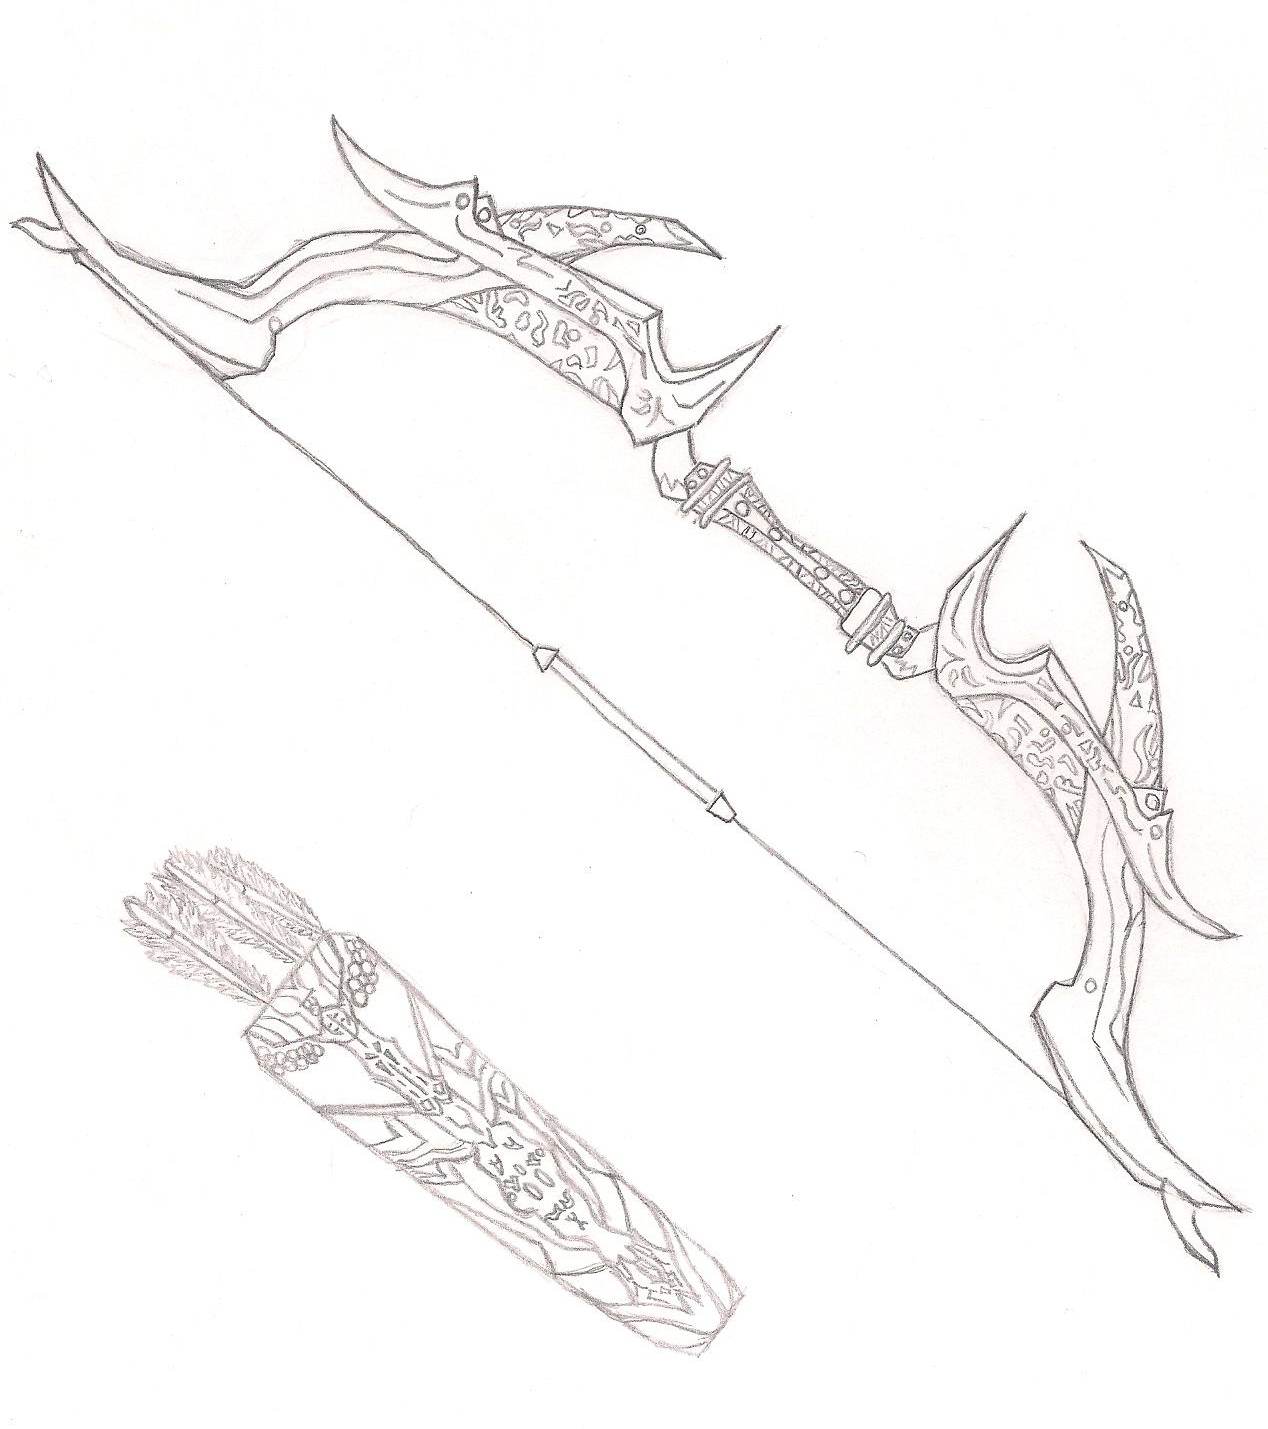 Drawn weapon skyrim By Daedric Daedric FailedxExperimentx13 Sword